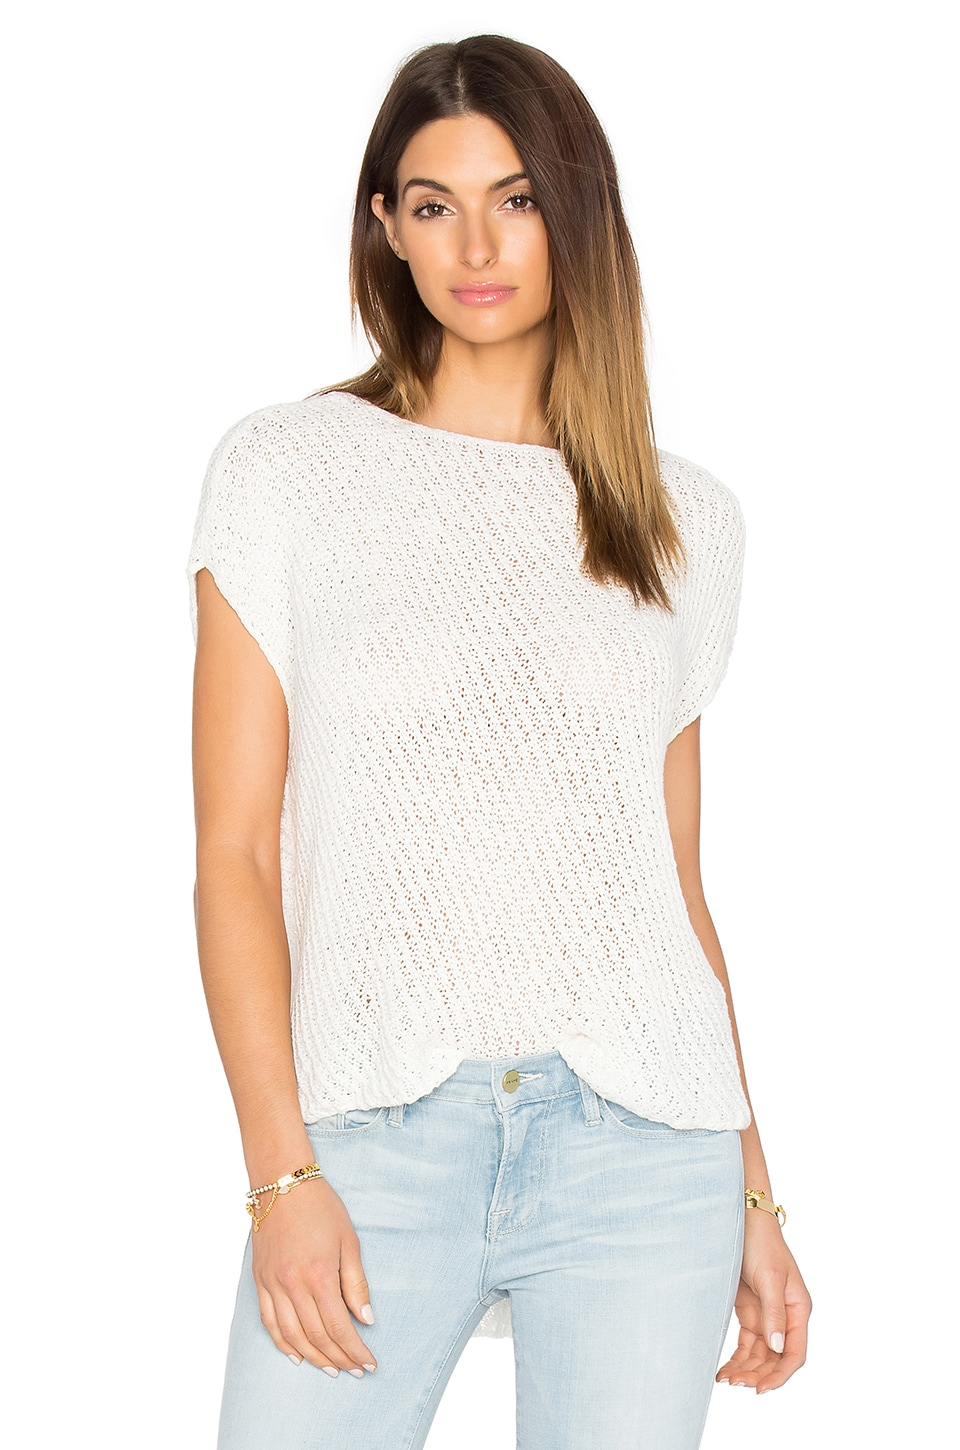 Diagonal Stitch Pullover Top by ATM Anthony Thomas Melillo